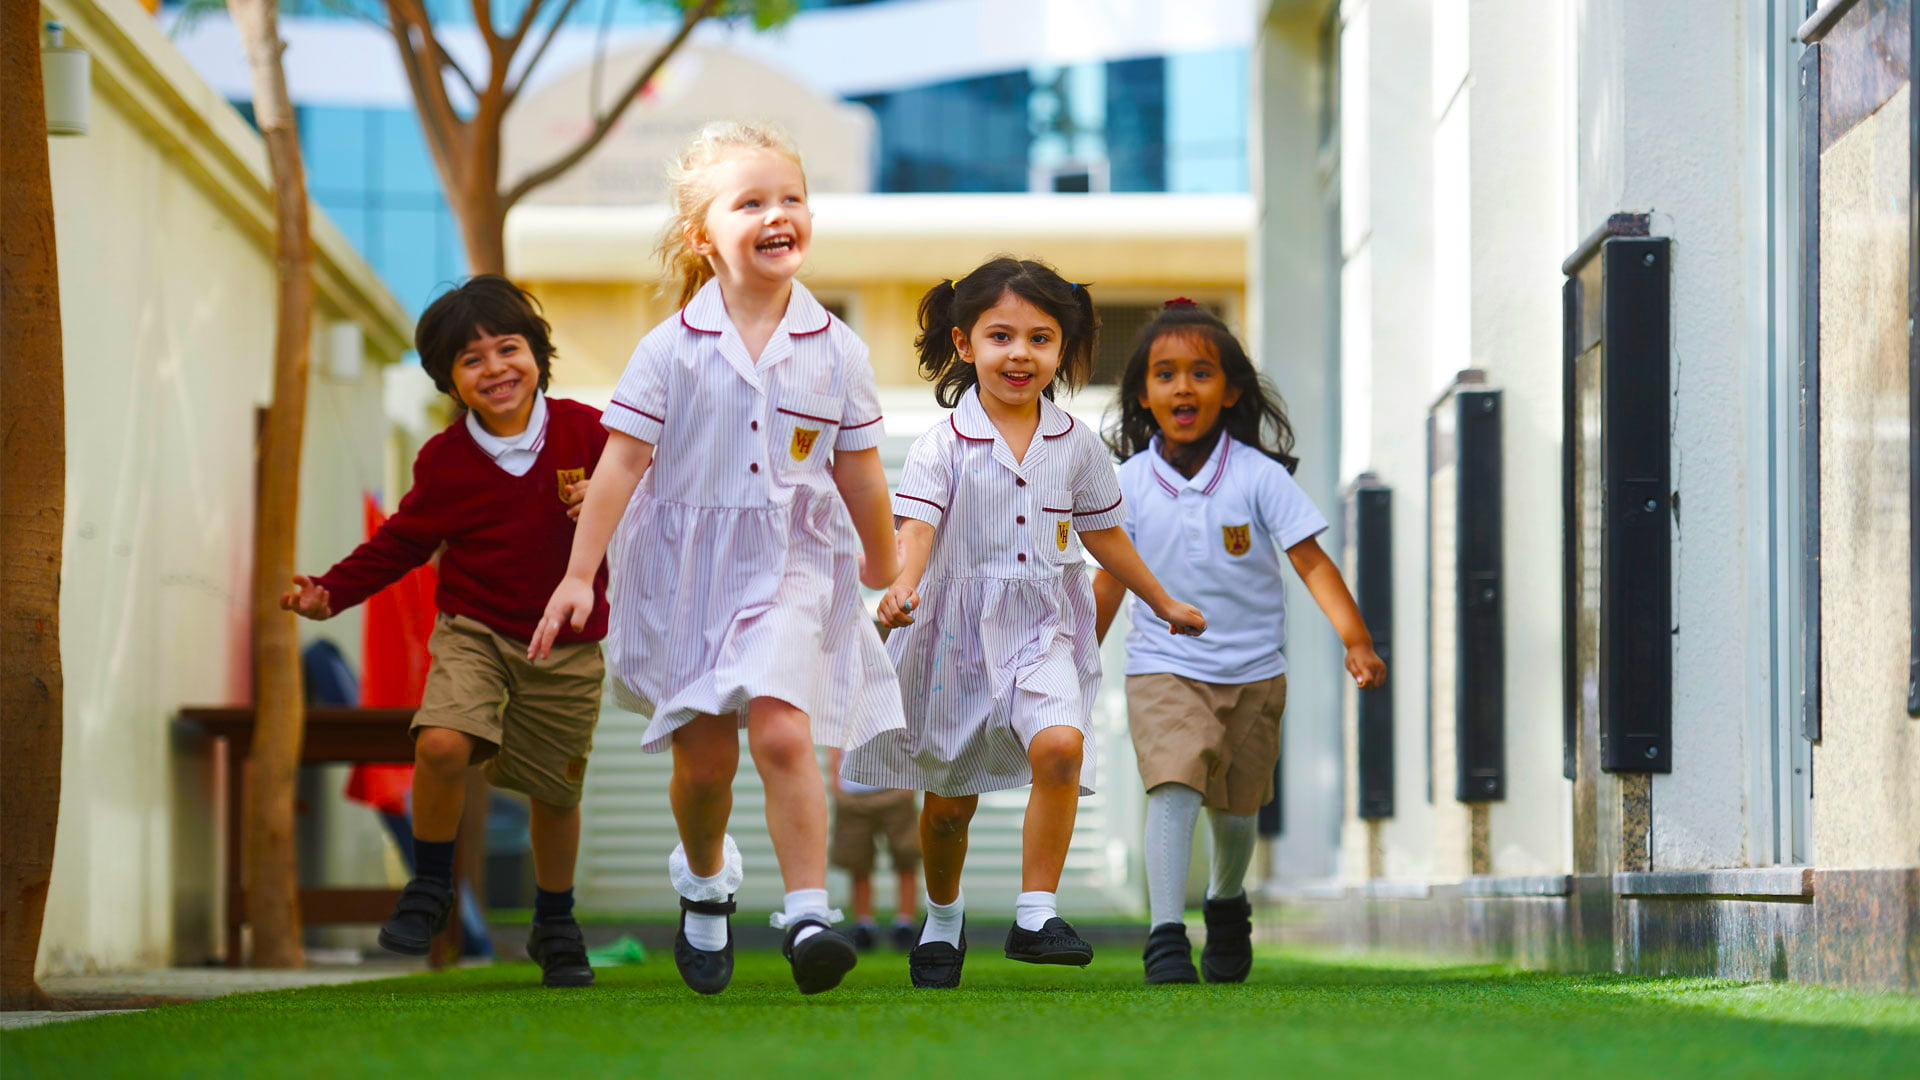 Image of children at Victory Heights primary School VHP in Dubai running and happy